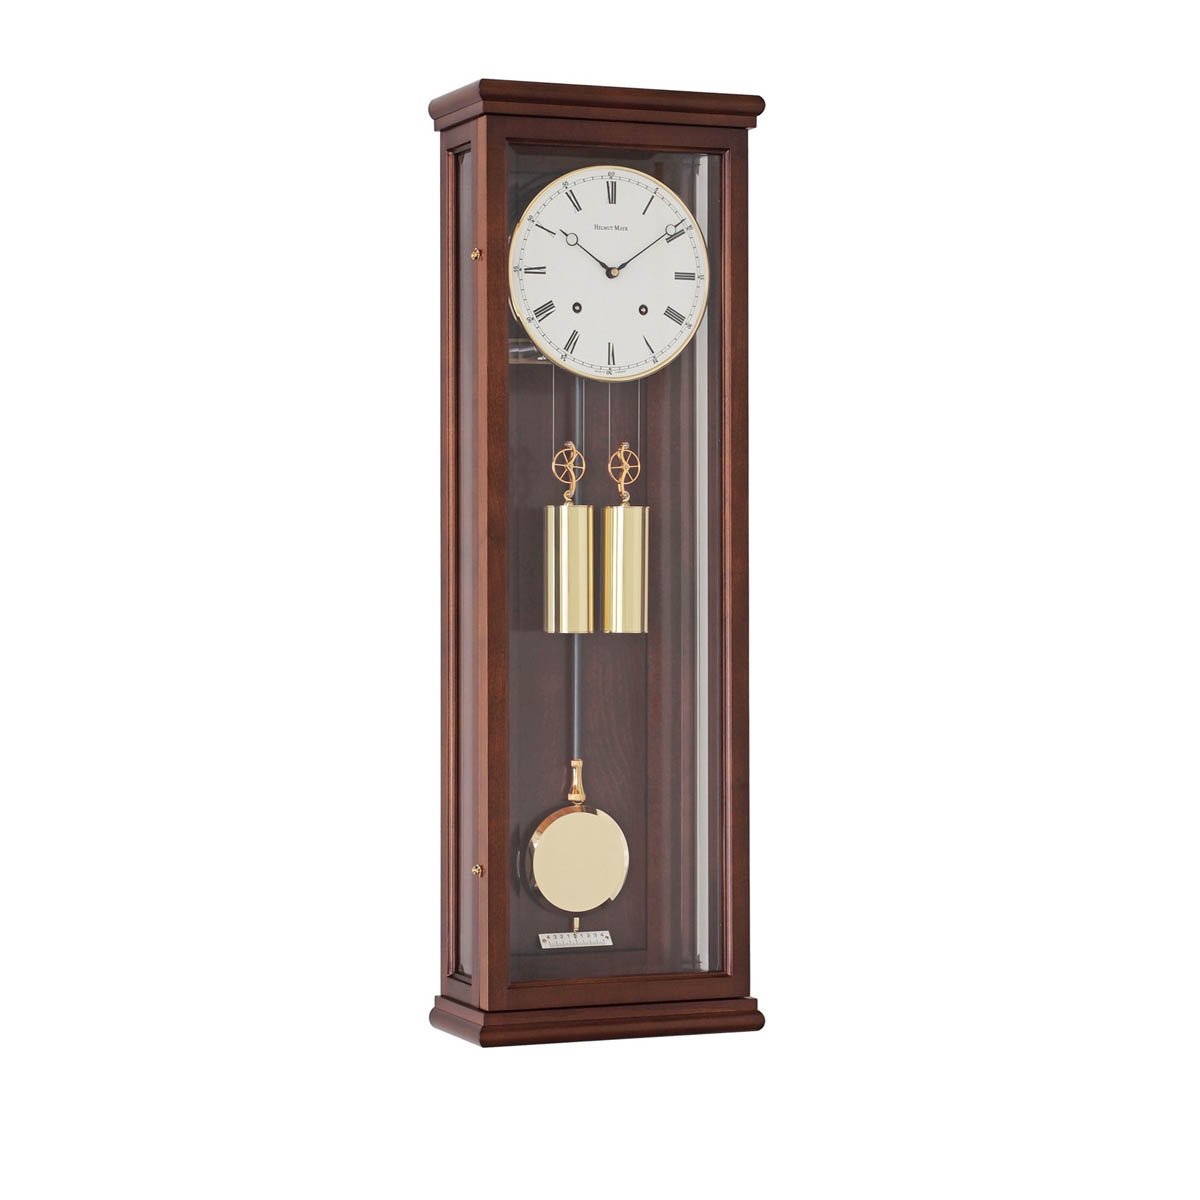 HAYWOODR1680 Regulator Wall Clock